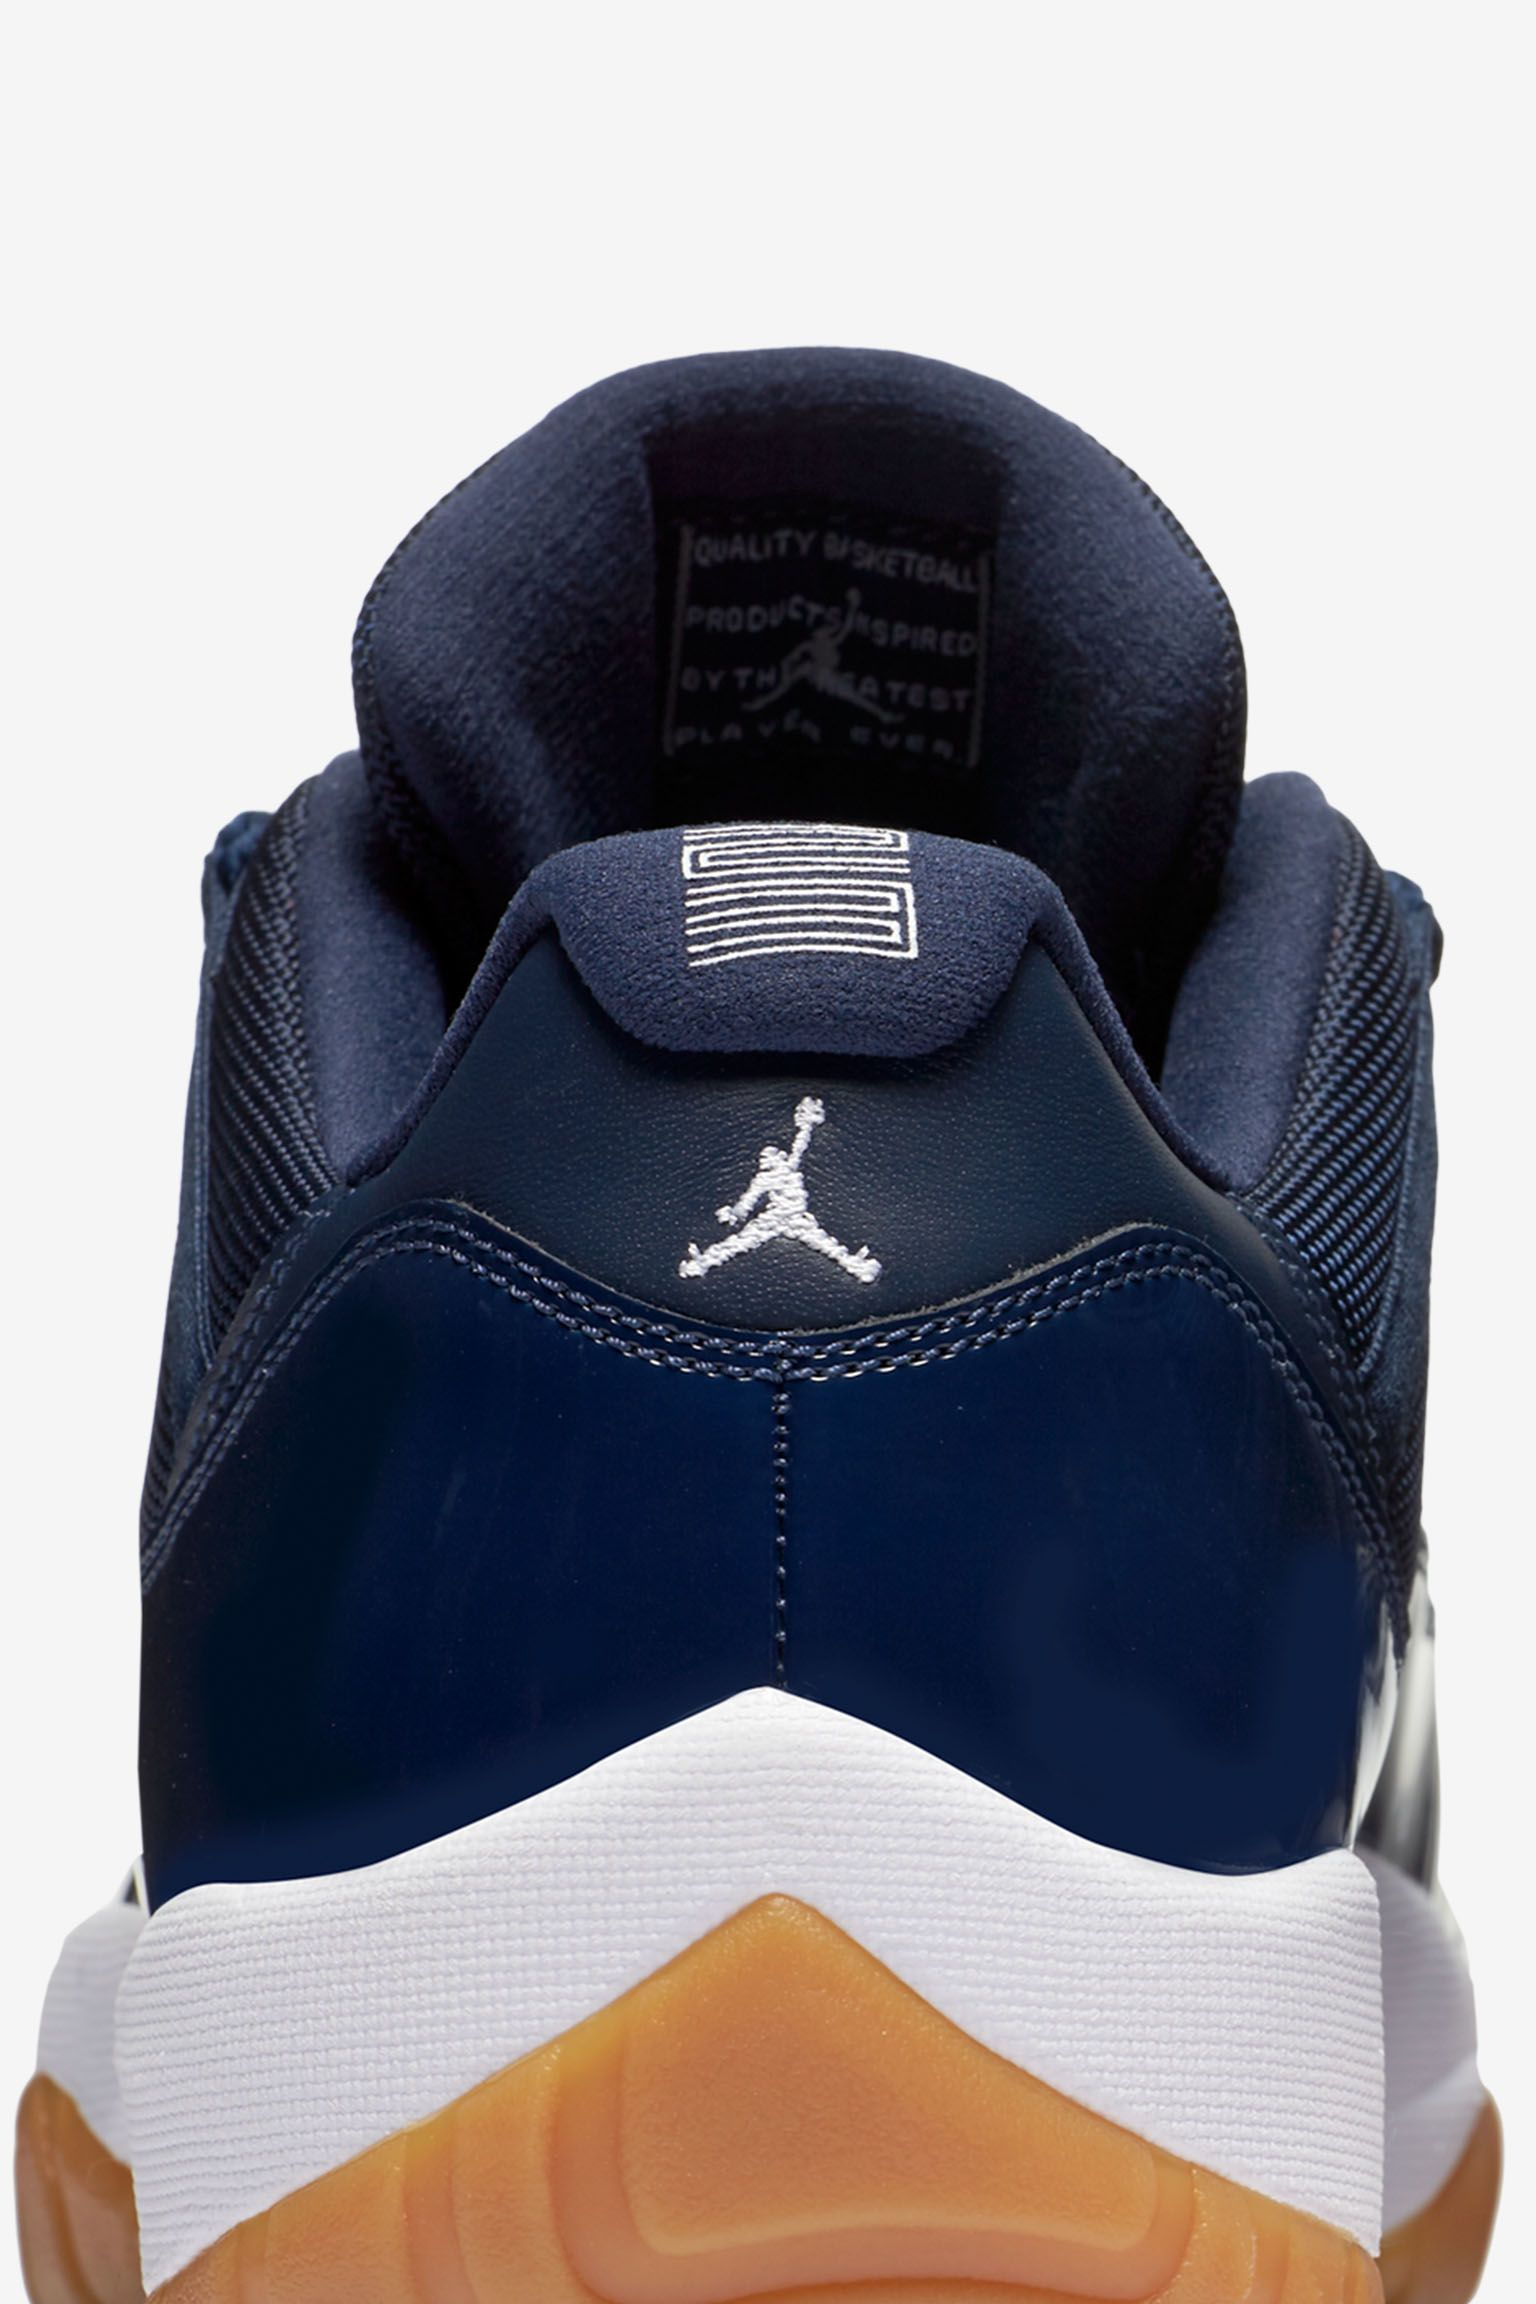 Air Jordan 11 Retro Low 'Navy Gum' Release Date